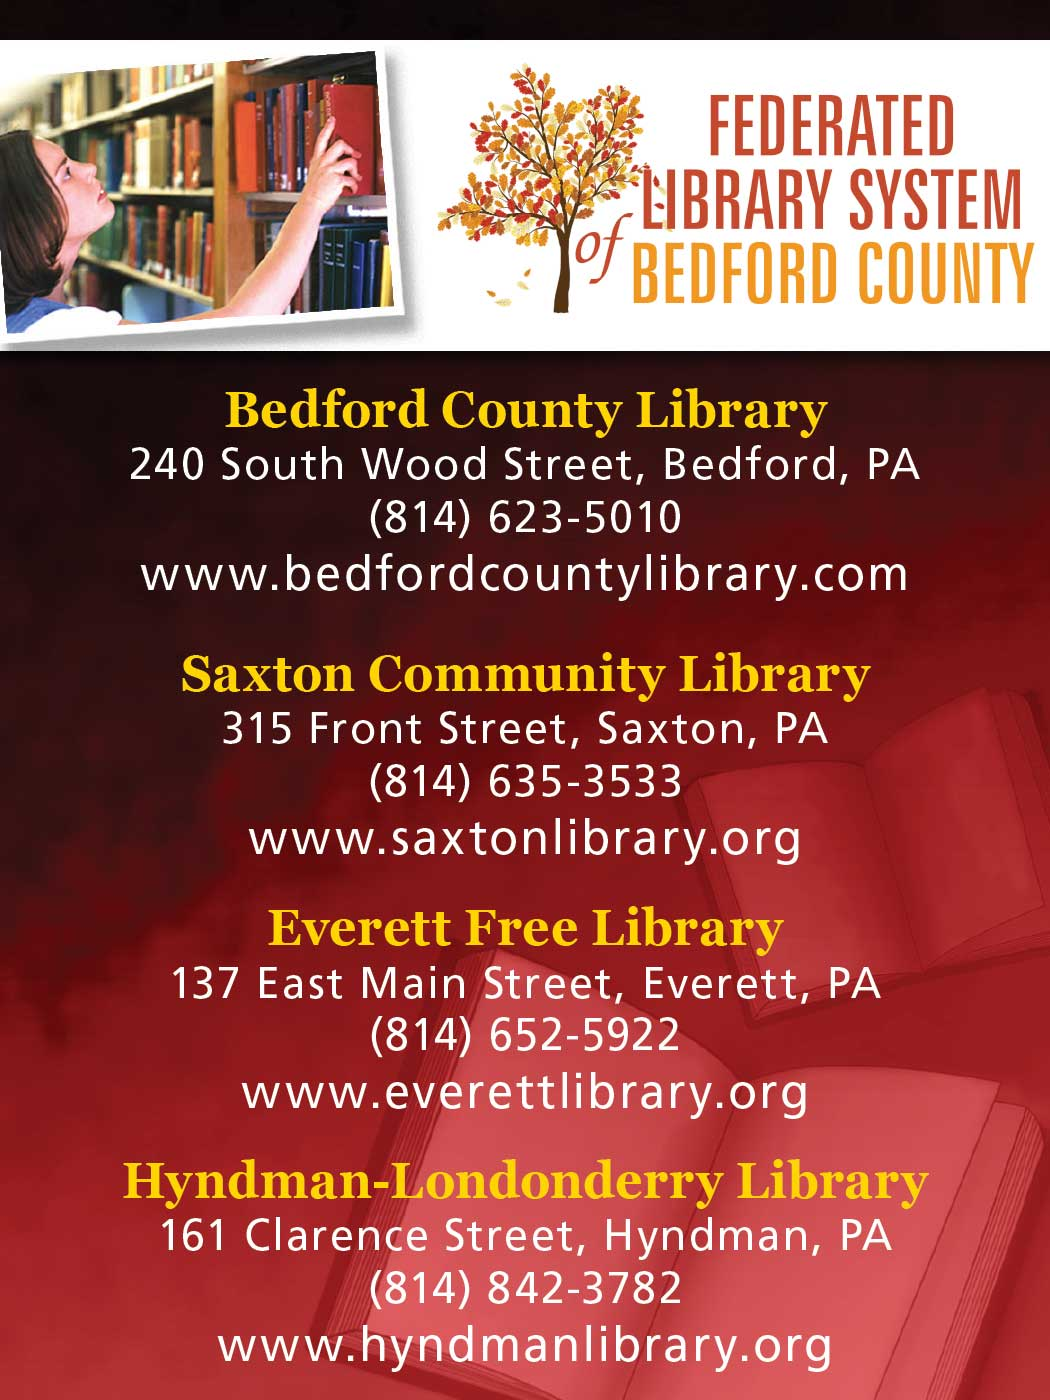 """<center>Federated Library System of Bedford County   <b><a href=""""http://www.bedfordcountylibrary.com"""" target=""""_blank"""" rel=""""noopener noreferrer"""">View the website</a></b> • Saxton Community Library   <b><a href=""""https://saxtonlibrary.org"""" target=""""_blank"""" rel=""""noopener noreferrer"""">View the website</a></b> • Everett Free Library   <b><a href=""""http://www.everettlibrary.org"""" target=""""_blank"""" rel=""""noopener noreferrer"""">View the website</a></b> • Hyndman-Londonderry Library   <b><a href=""""https://www.hyndmanlibrary.org"""" target=""""_blank"""" rel=""""noopener noreferrer"""">View the website</a></b></center>"""